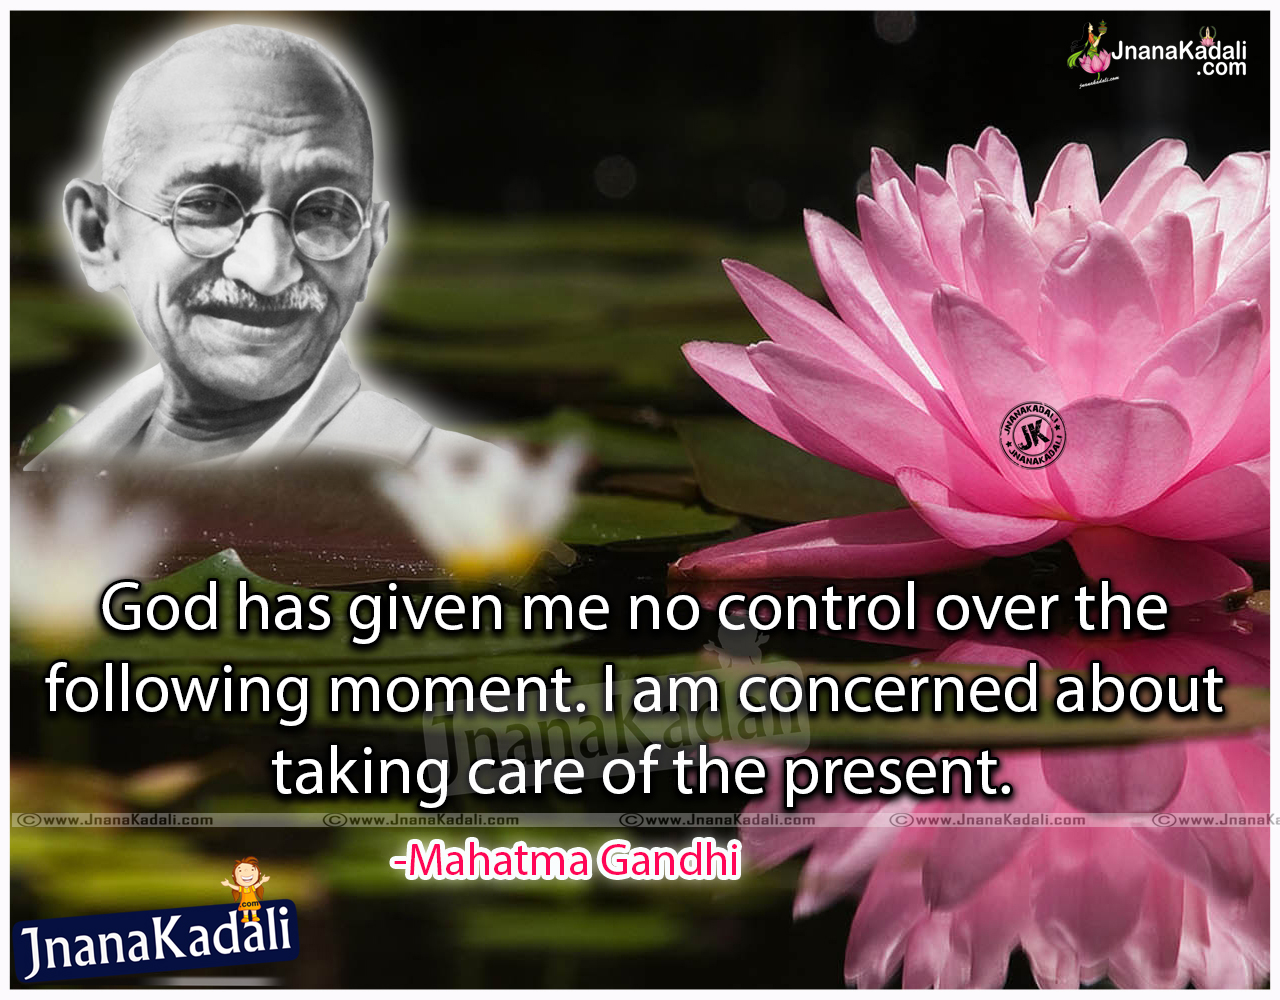 the life of mahathma gandhi in tamil language Mohandas karamchand gandhi (mahatma gandhi) was born on october 2, 1869 , into a hindu modh family in porbanadar, gujarat, india his father, named he returned to bombay and practiced law there for a year, then went to south africa to work for an indian firm in natal there gandhi experienced racism: he was.